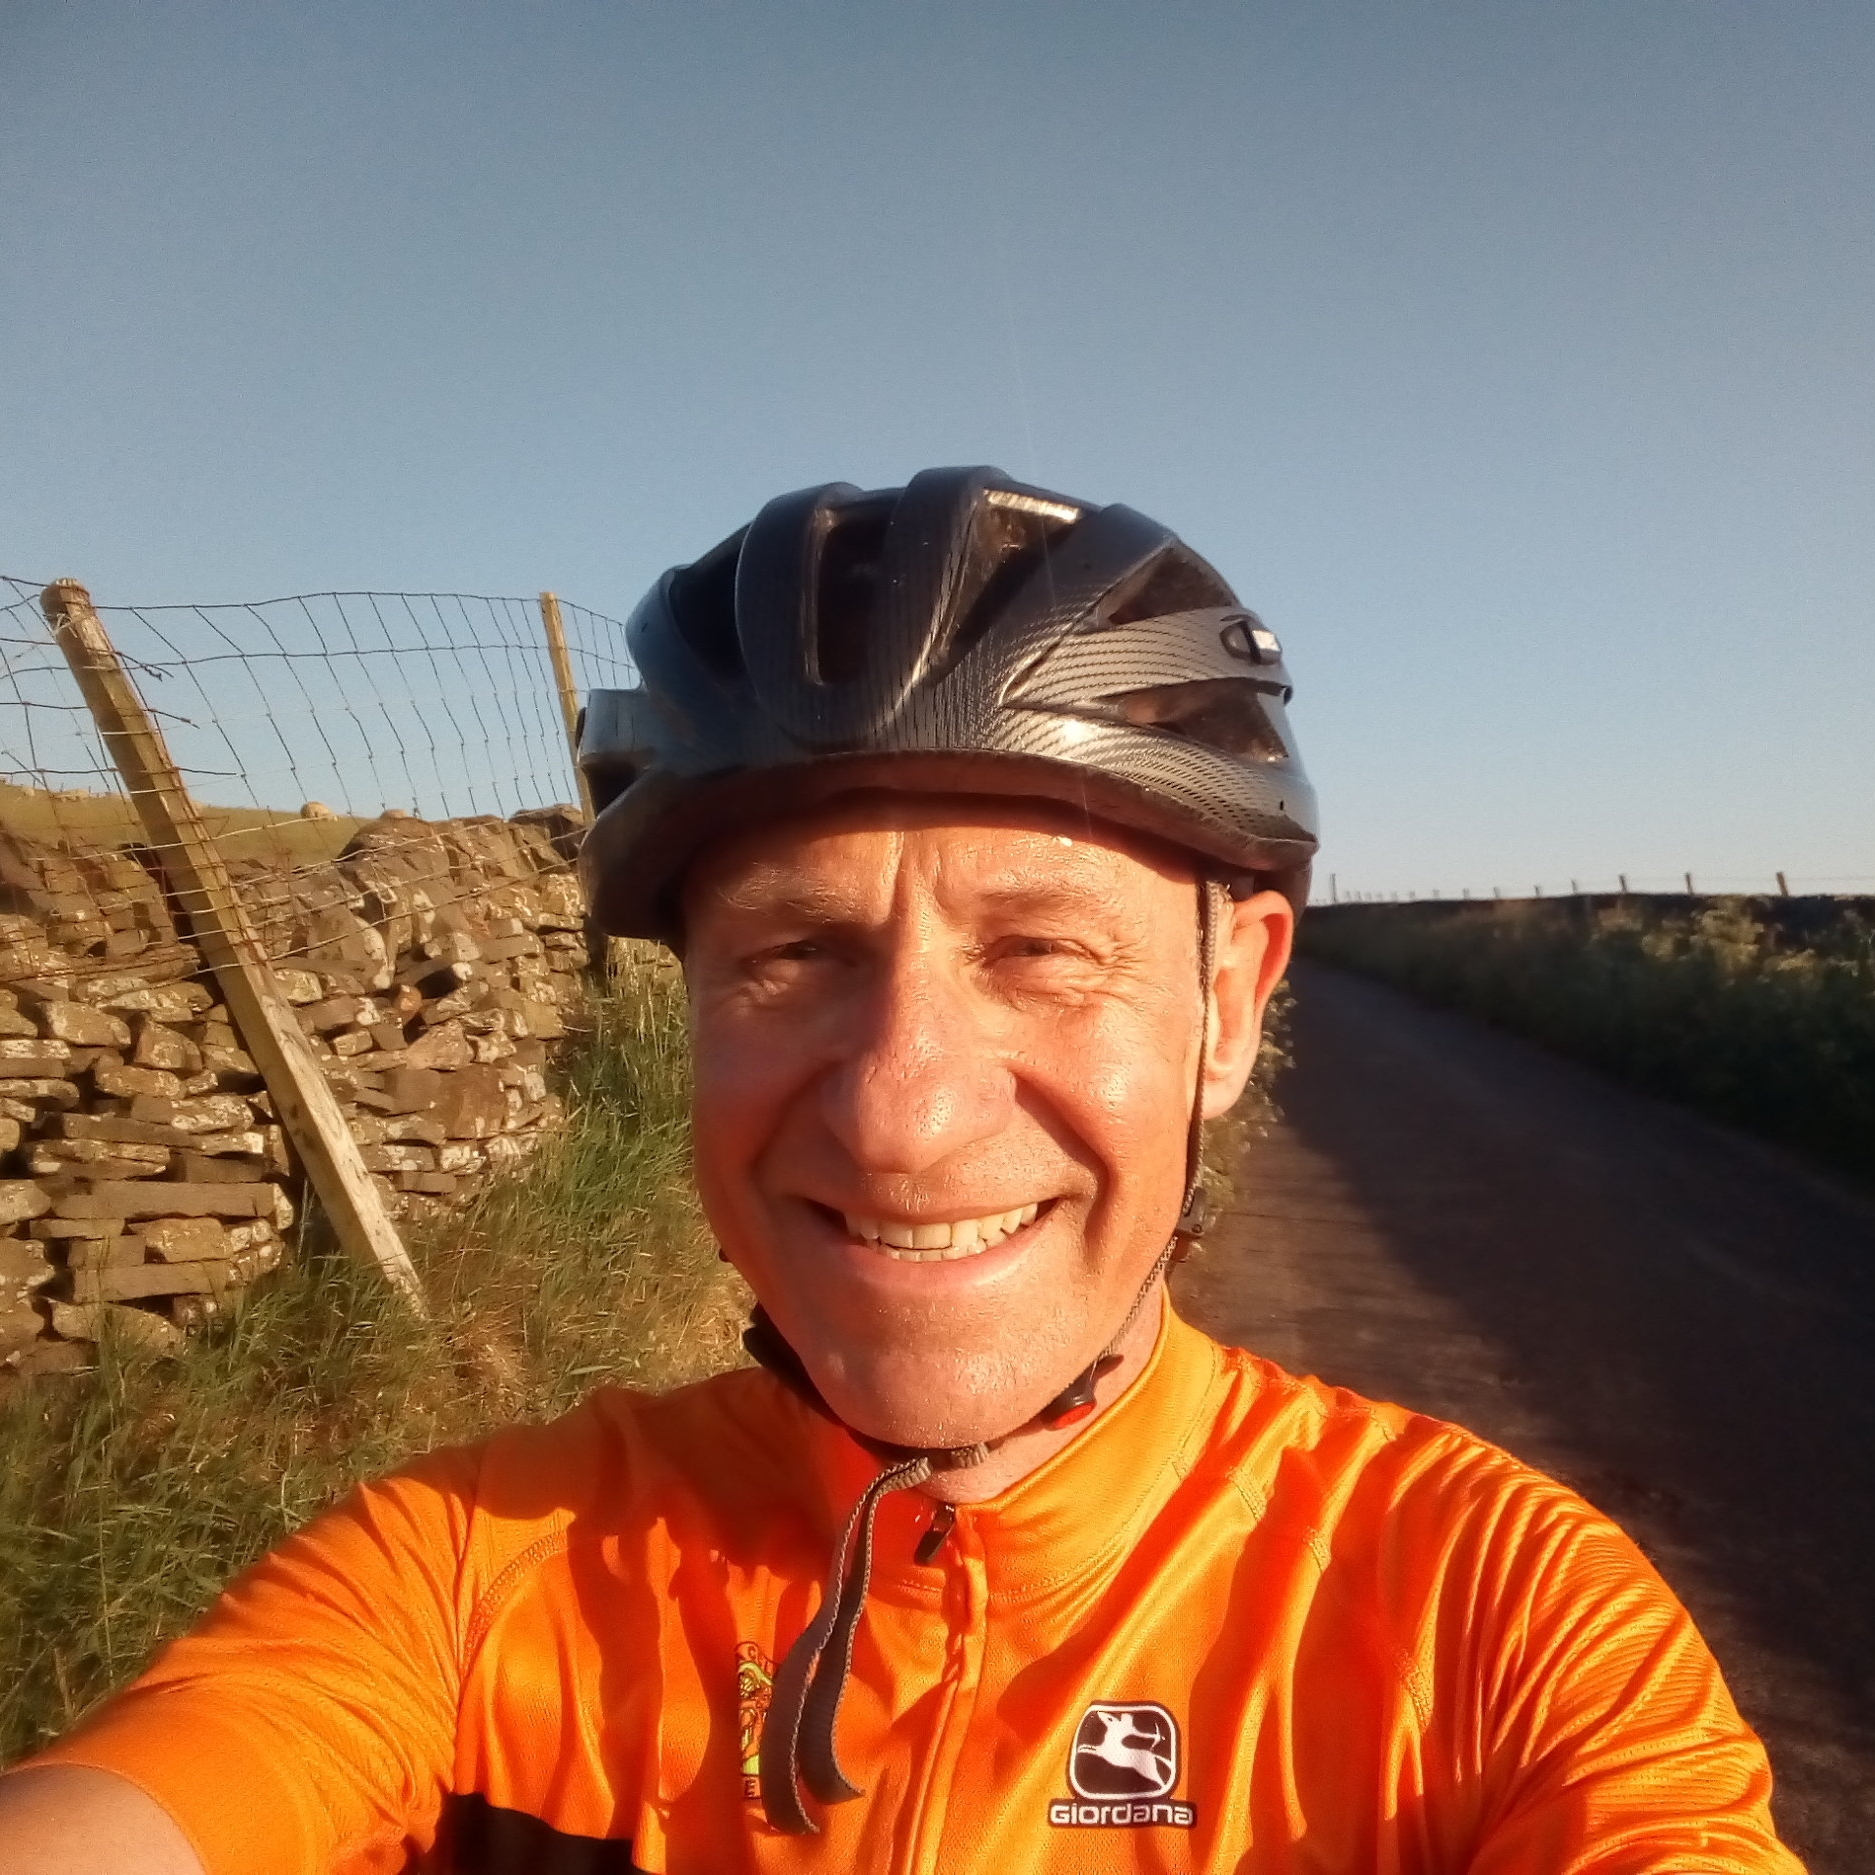 Phil - Just A Ridephil.k@macclesfieldwheelers.org.uk